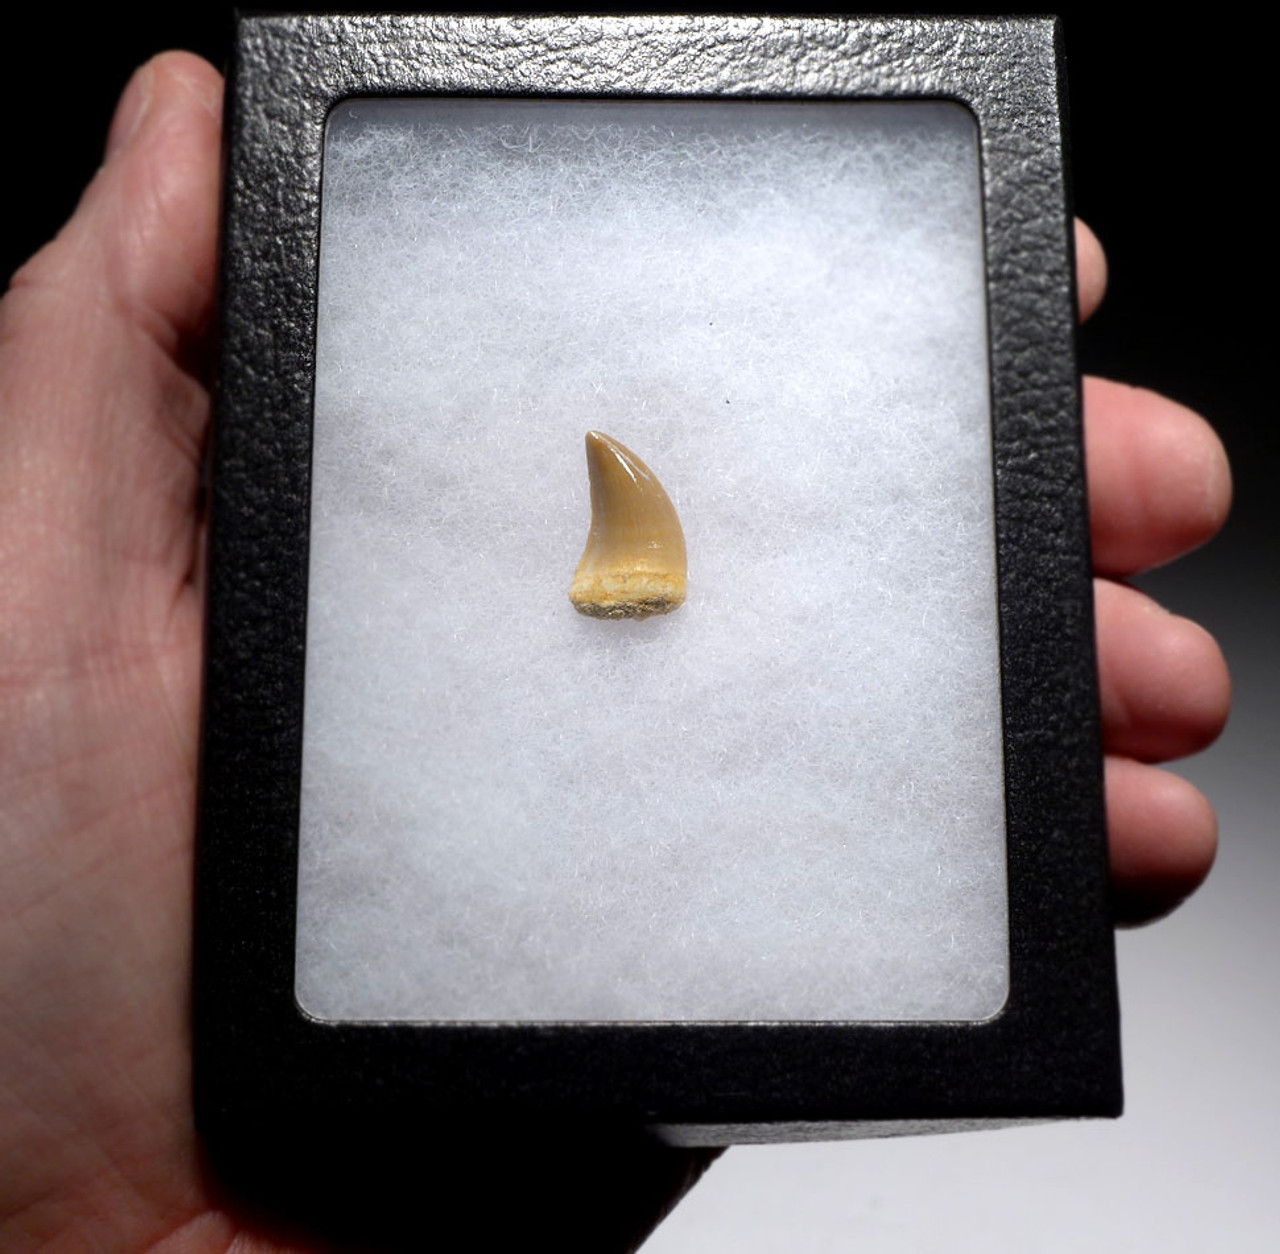 HALISAURUS FOSSIL TOOTH FROM A MOSASAUR MARINE REPTILE *DT1-141